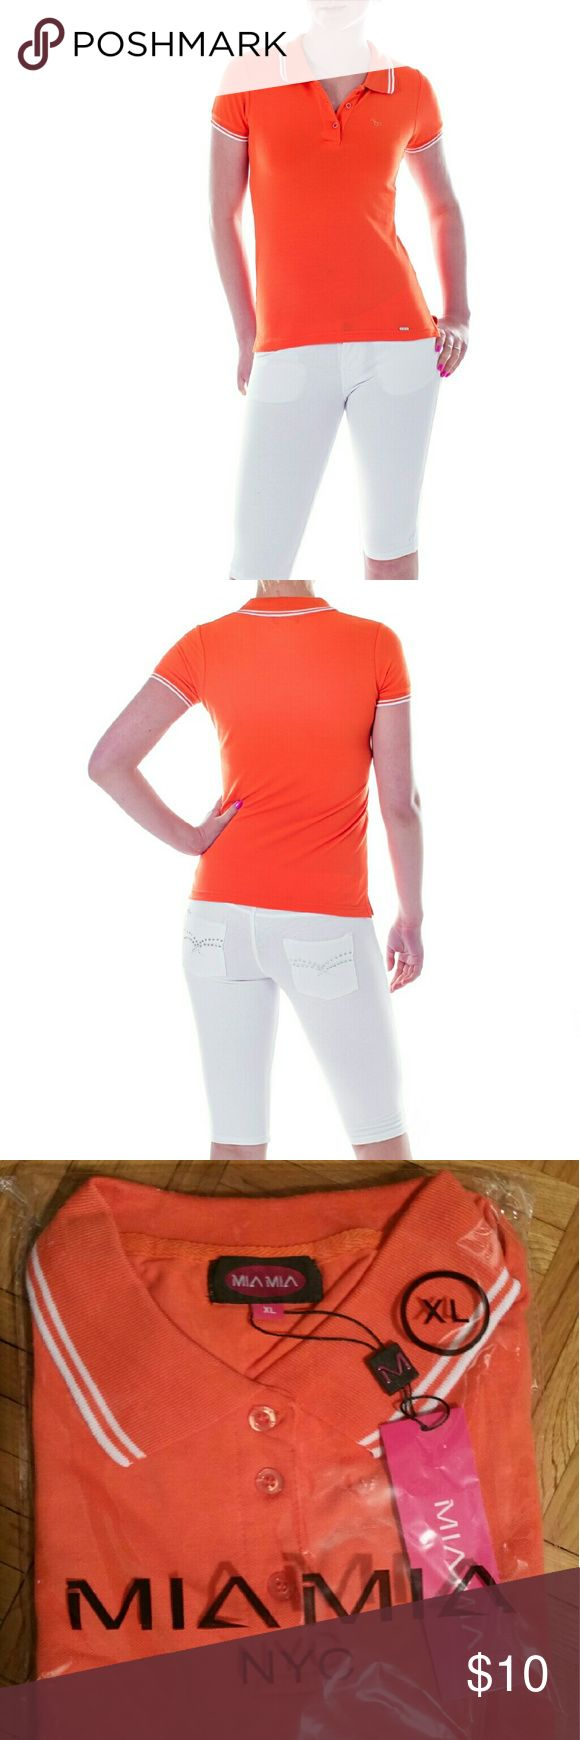 "Mia Mia Junior Polo Shirt, Orange New, packaged Polo Shirt in a bright orange. Perfect for a young lady venturing out to a sports outing. 100% Cotton. Size XL: 18"" across under the armpits (so 36"" around the chest),  25"" total length,   20"" neck circumference approx. Mia Mia Tops Tees - Short Sleeve"